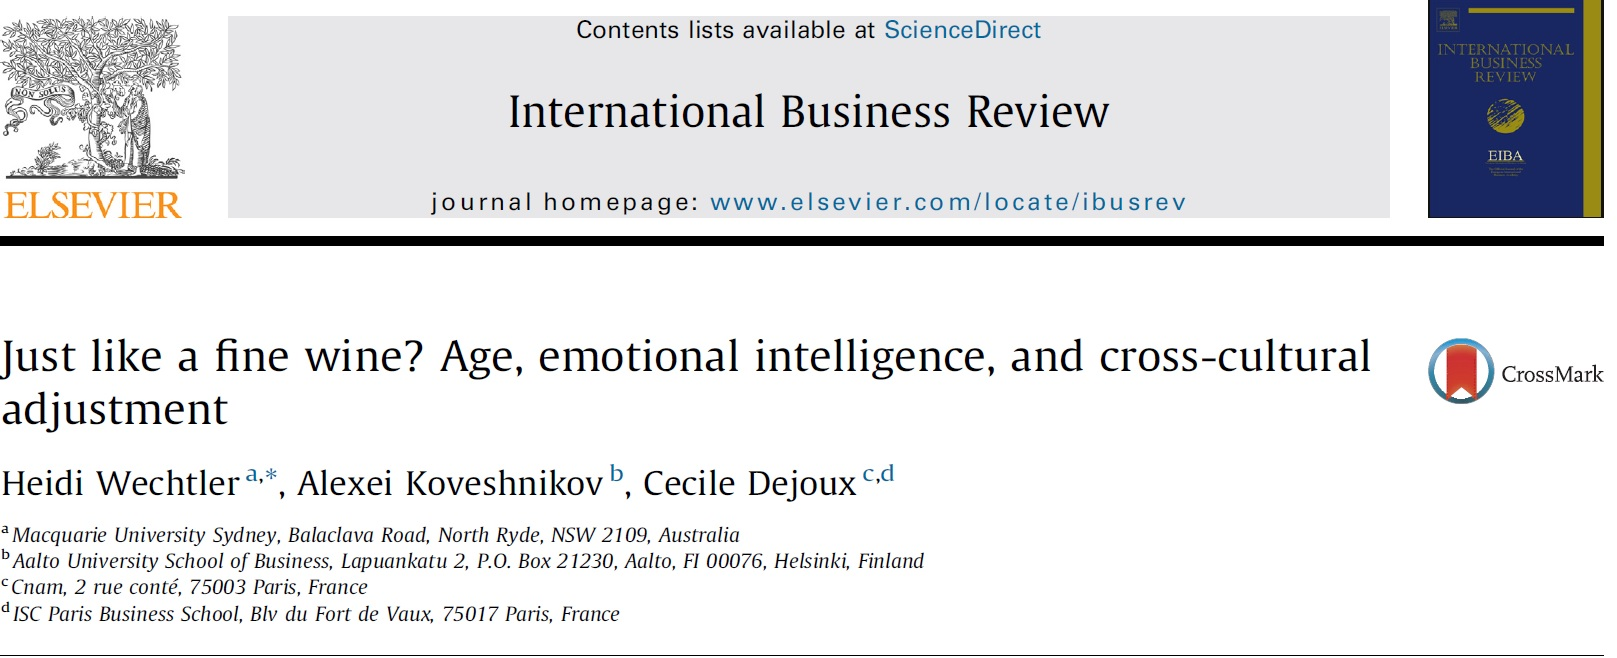 - In this study, we use socioemotional selectivity theory to shed light on the role of expatriates' age in the relationship between emotional intelligence (EI) and cross-cultural adjustment (CCA) of expatriates on assignment.Overall, our analysis is one of the first attempts to provide a more detailed theoretical understanding of the relationships between age, expatriation experience, EI and CCA in the context ofexpatriation. (2014)